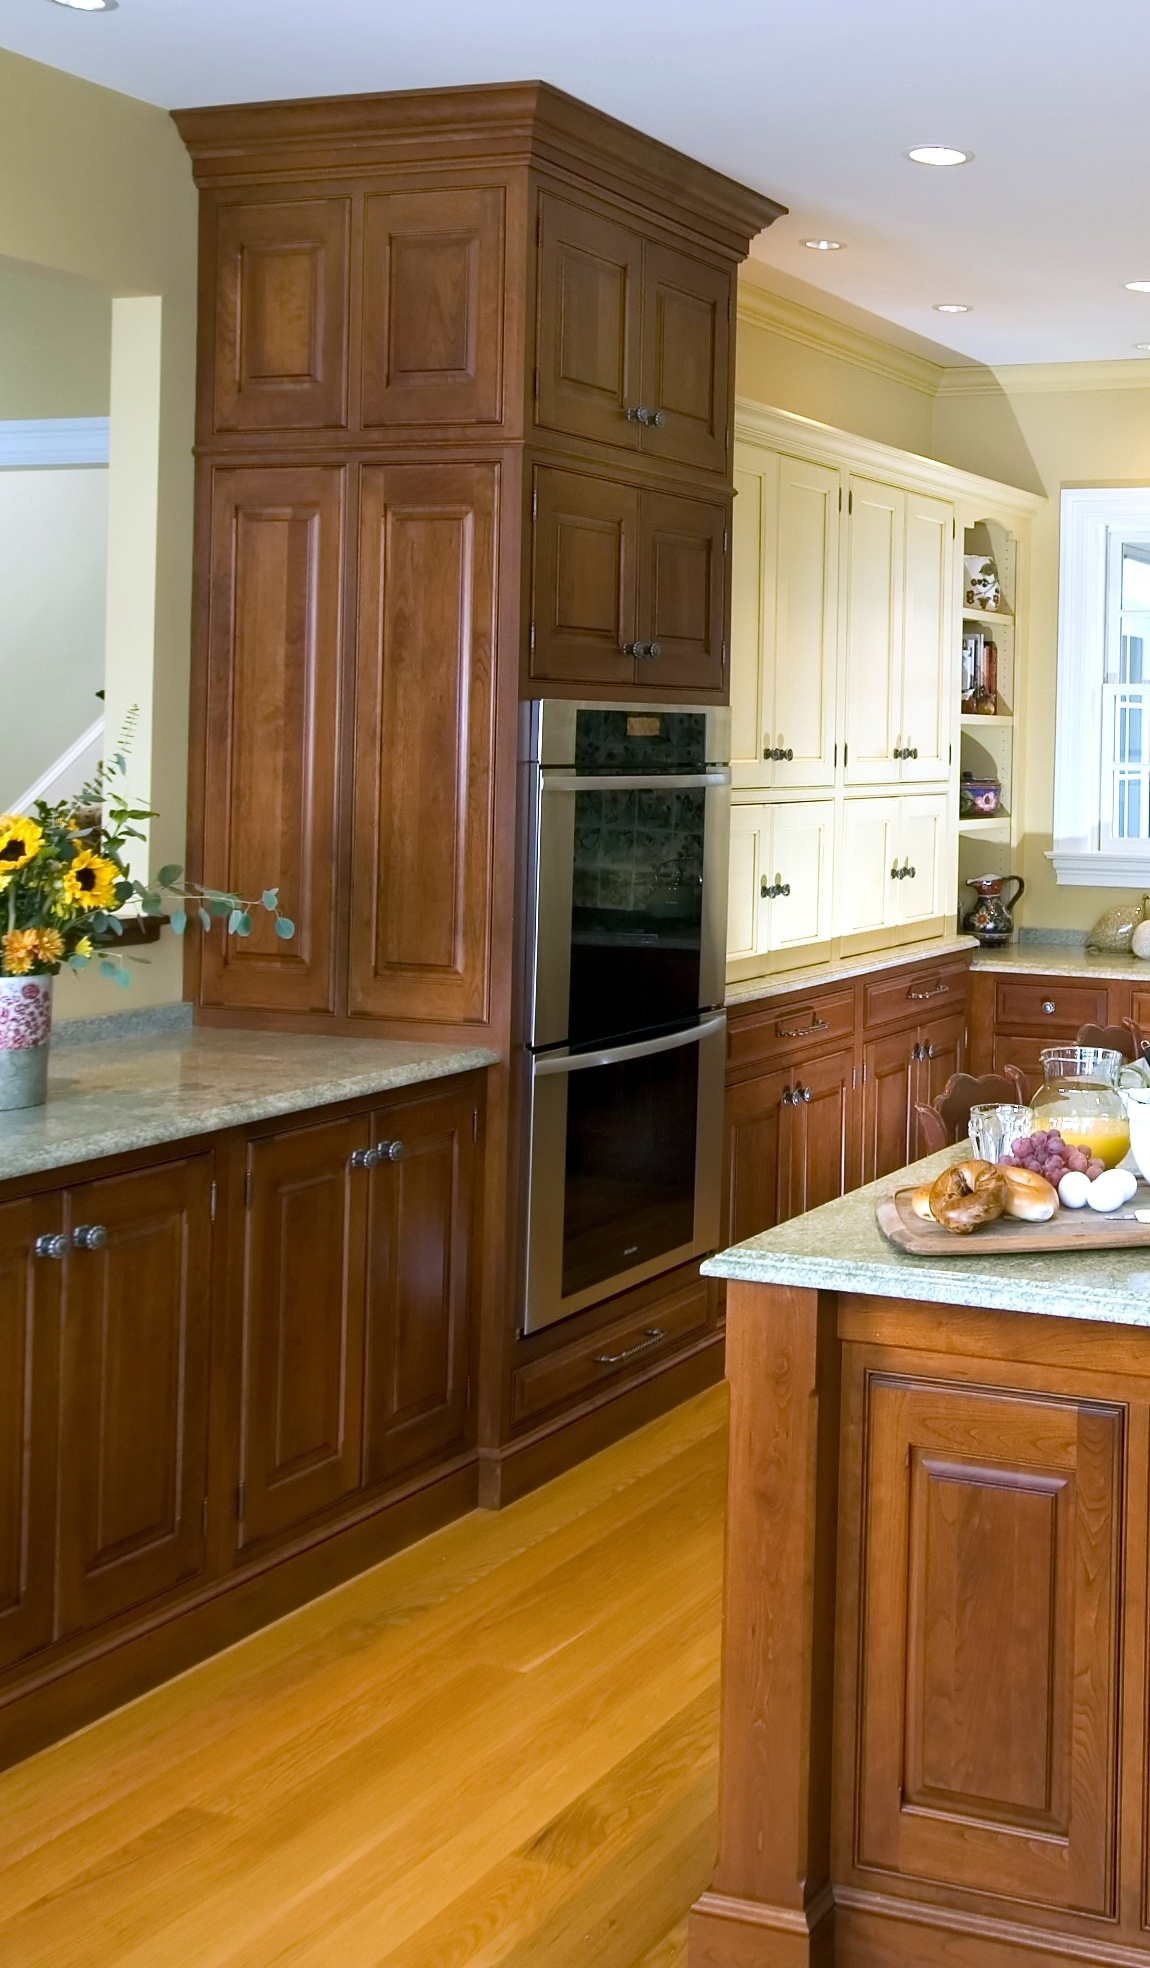 Traditional cabinetry crrok